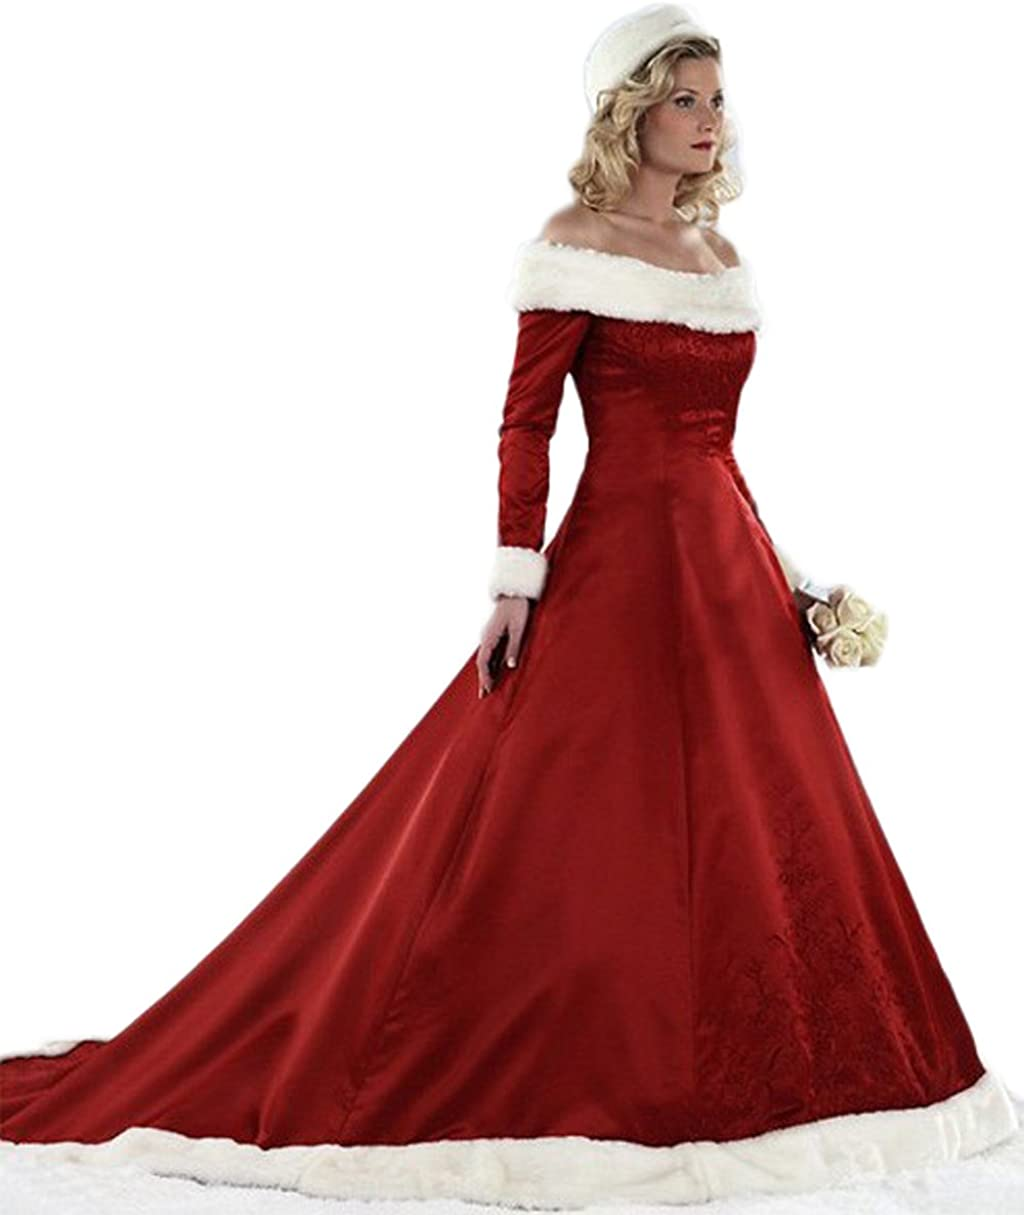 Chupeng Women\'s Long Sleeves Bridal Dresses Red Ball Gown for Christmas  Quinceanera Dress Plus Size Winter Wedding Dress